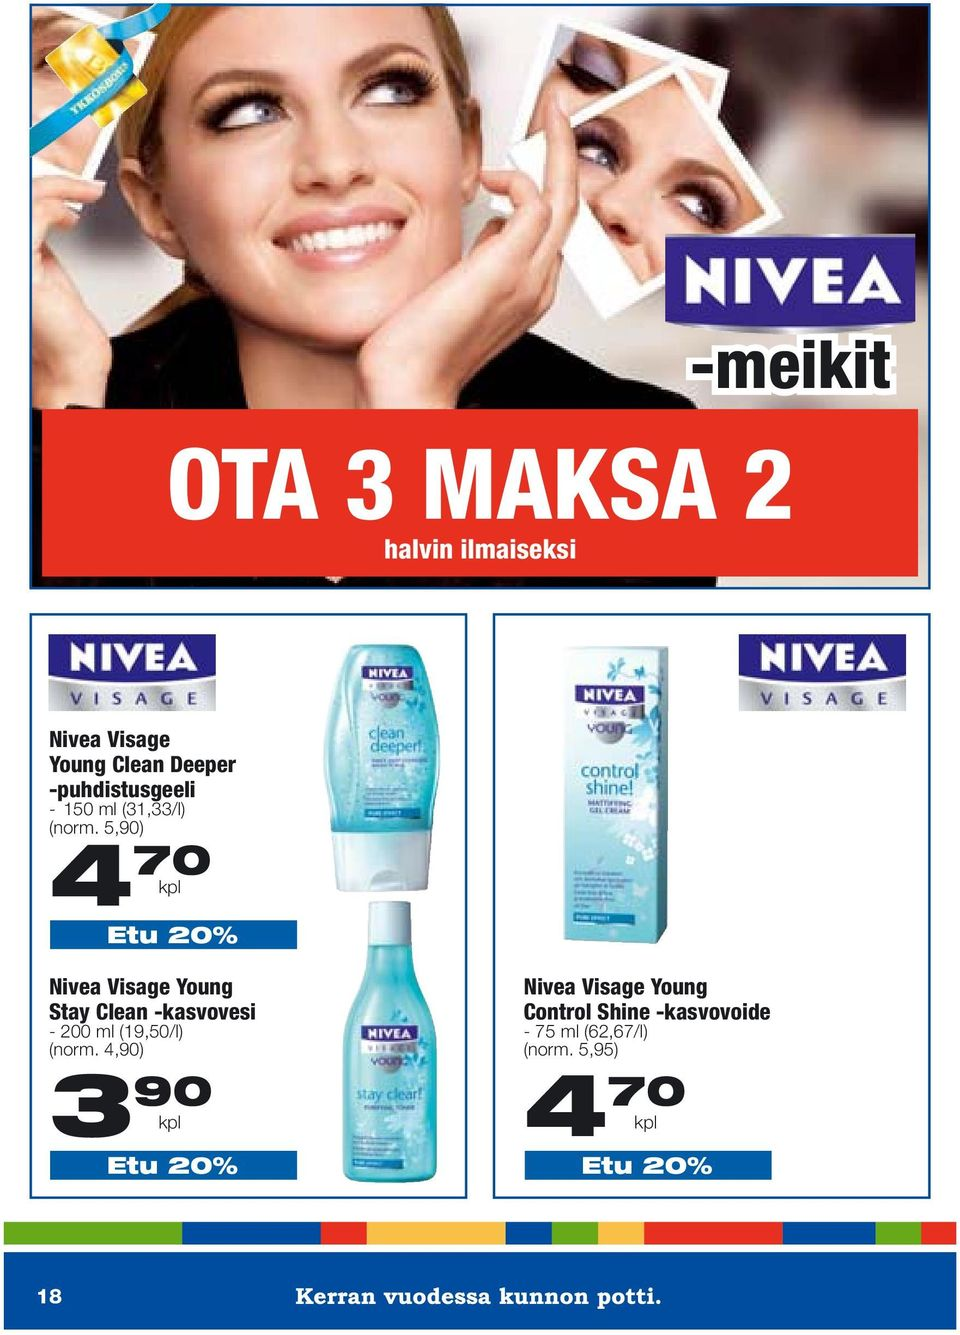 5,90) 4 70 kpl Etu 20% Nivea Visage Young Stay Clean -kasvovesi - 200 ml